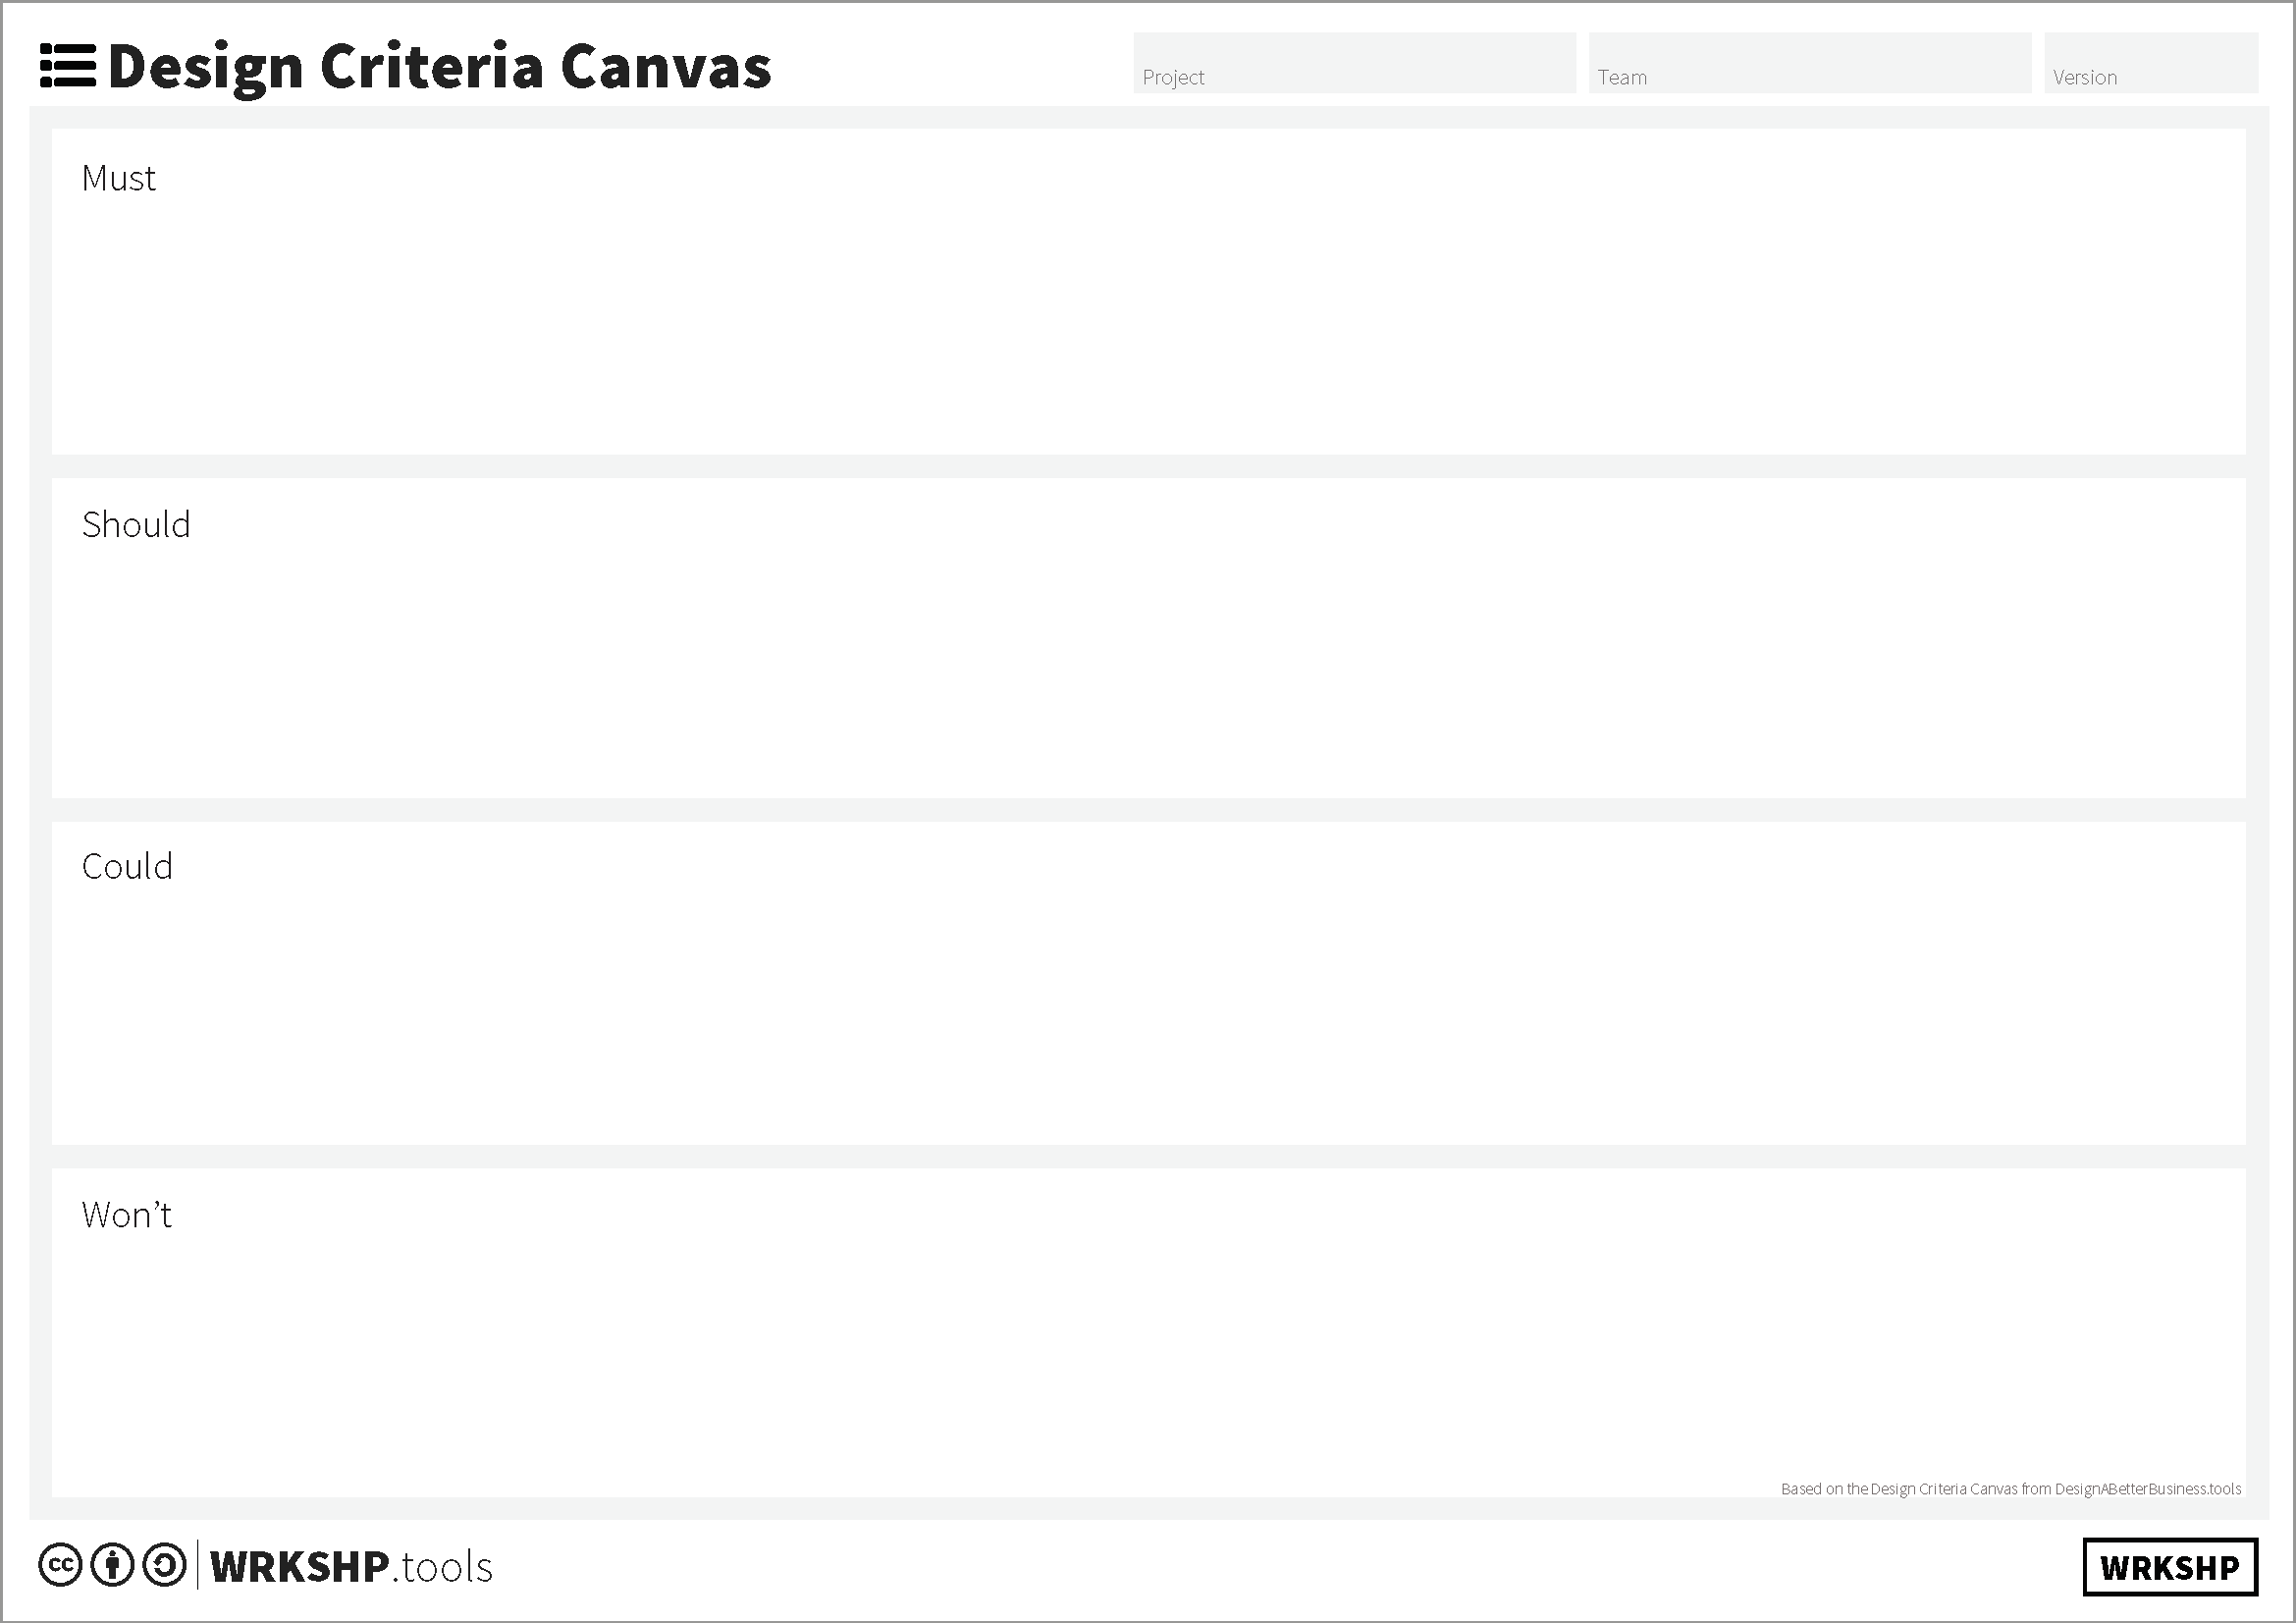 Design Criteria Canvas